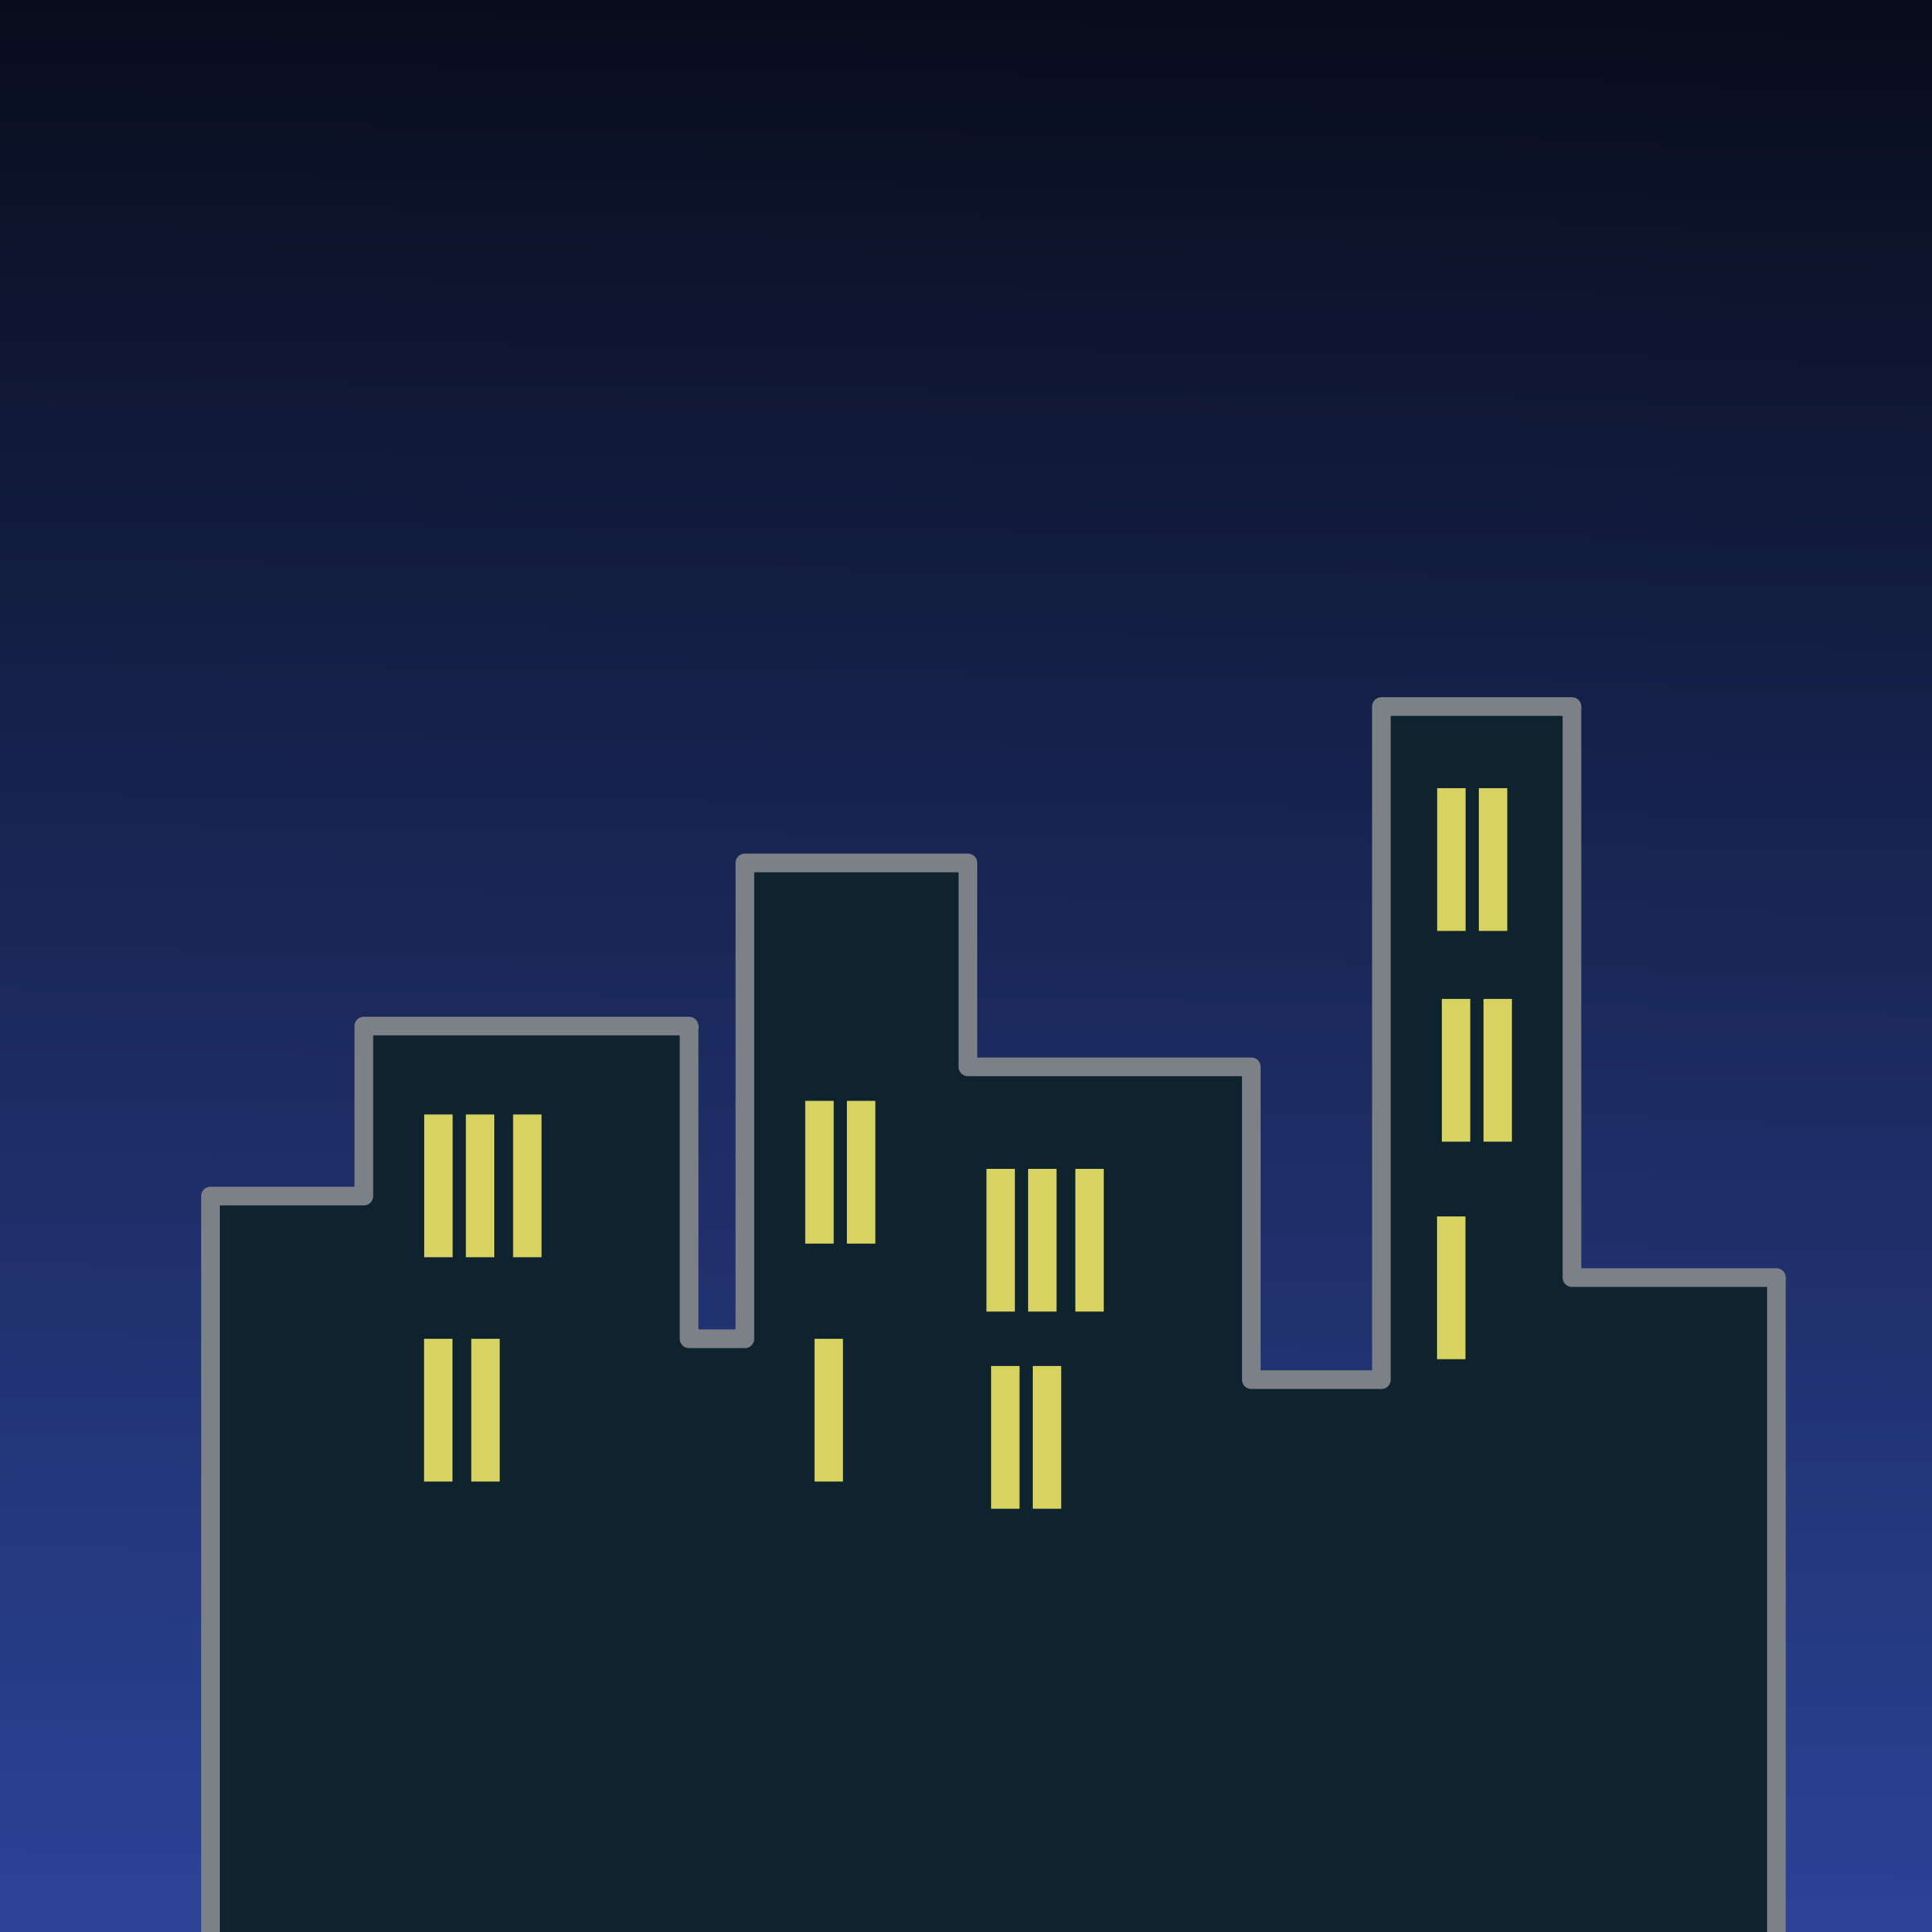 Buildings at Night Icon by j4p4n